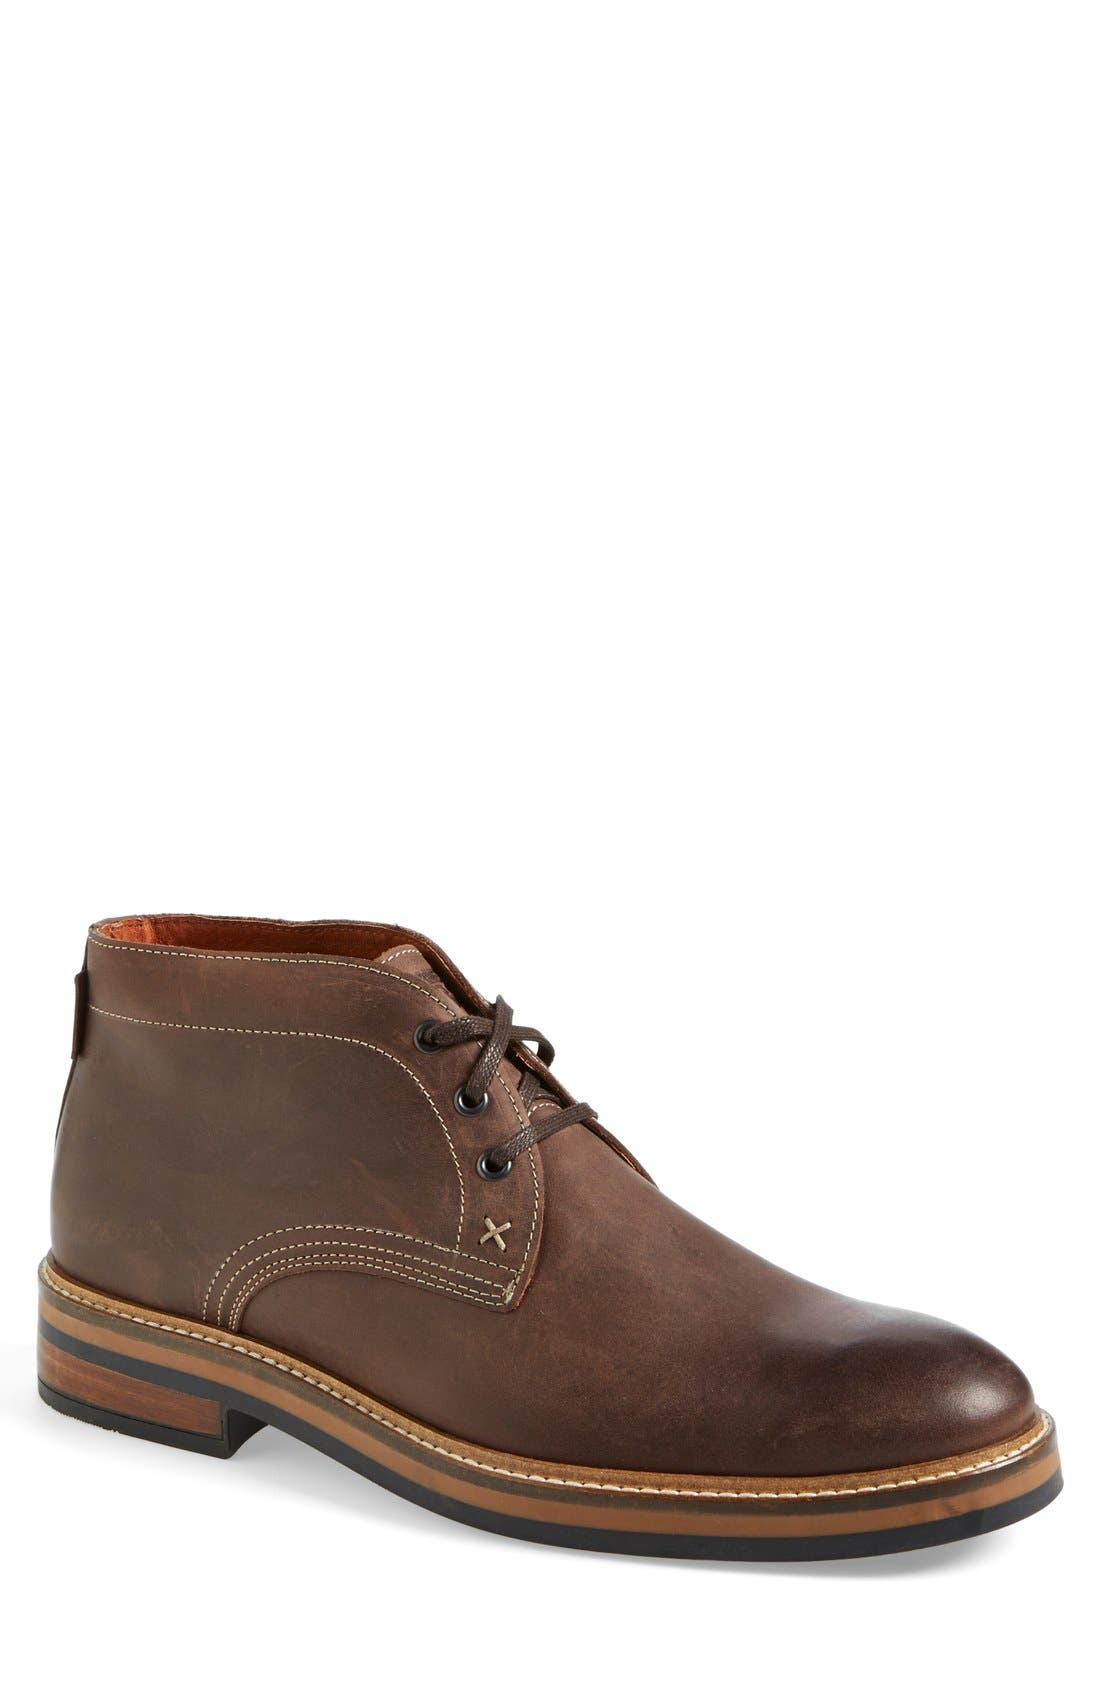 Main Image - Wolverine 'Francisco' Chukka Boot (Men)